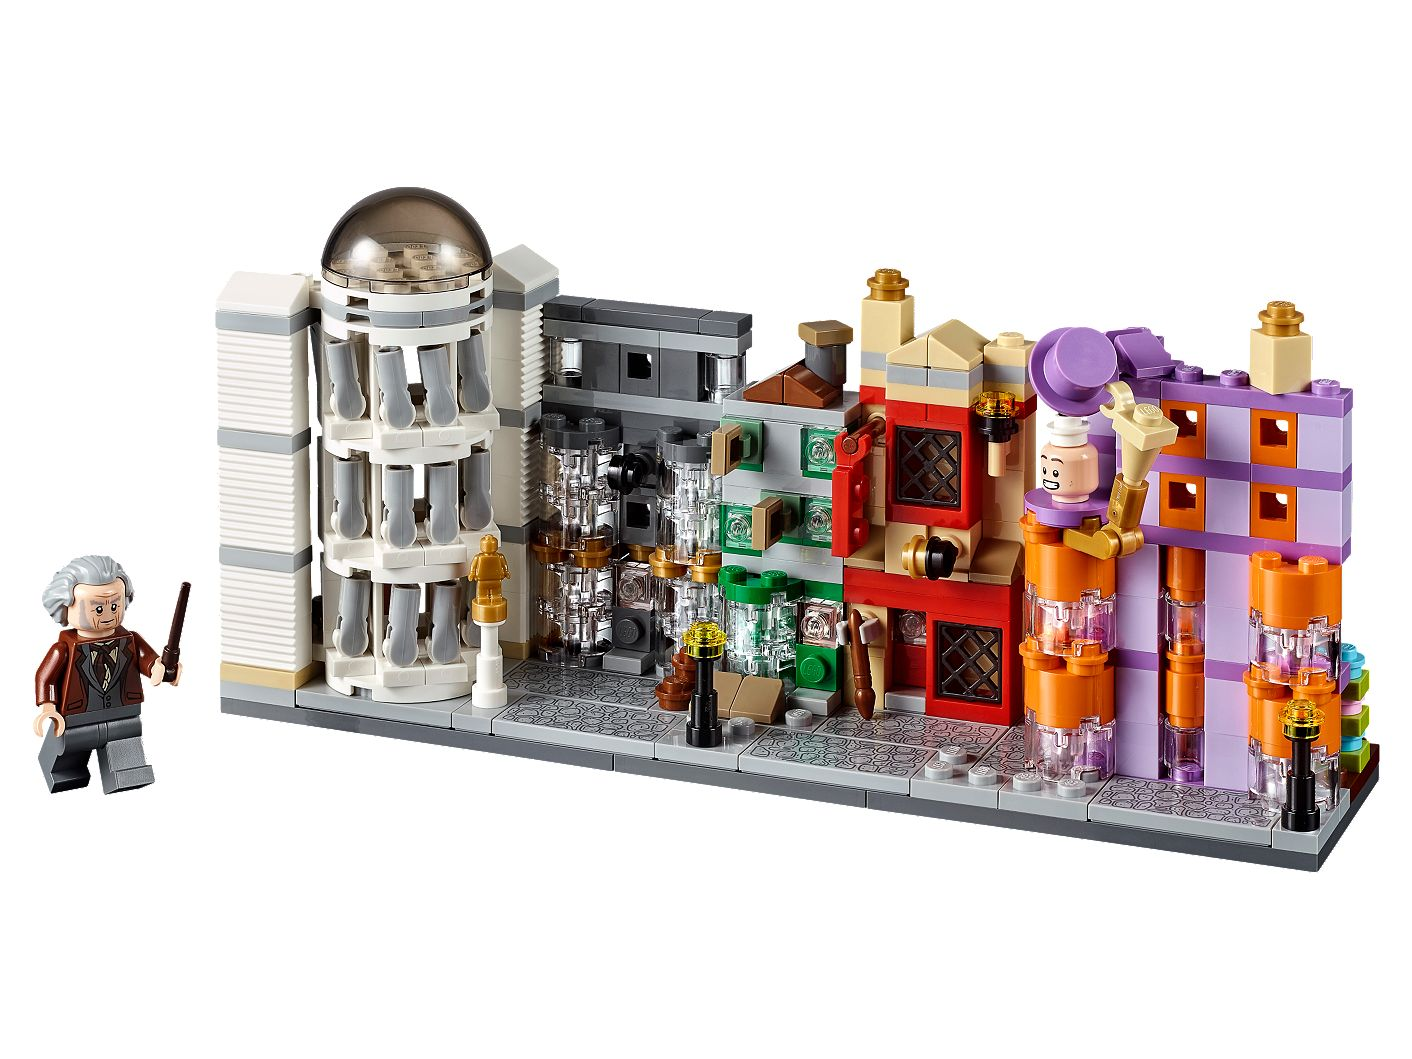 Diagon Alley 40289 Harry Potter Buy Online At The Official Lego Shop Fr